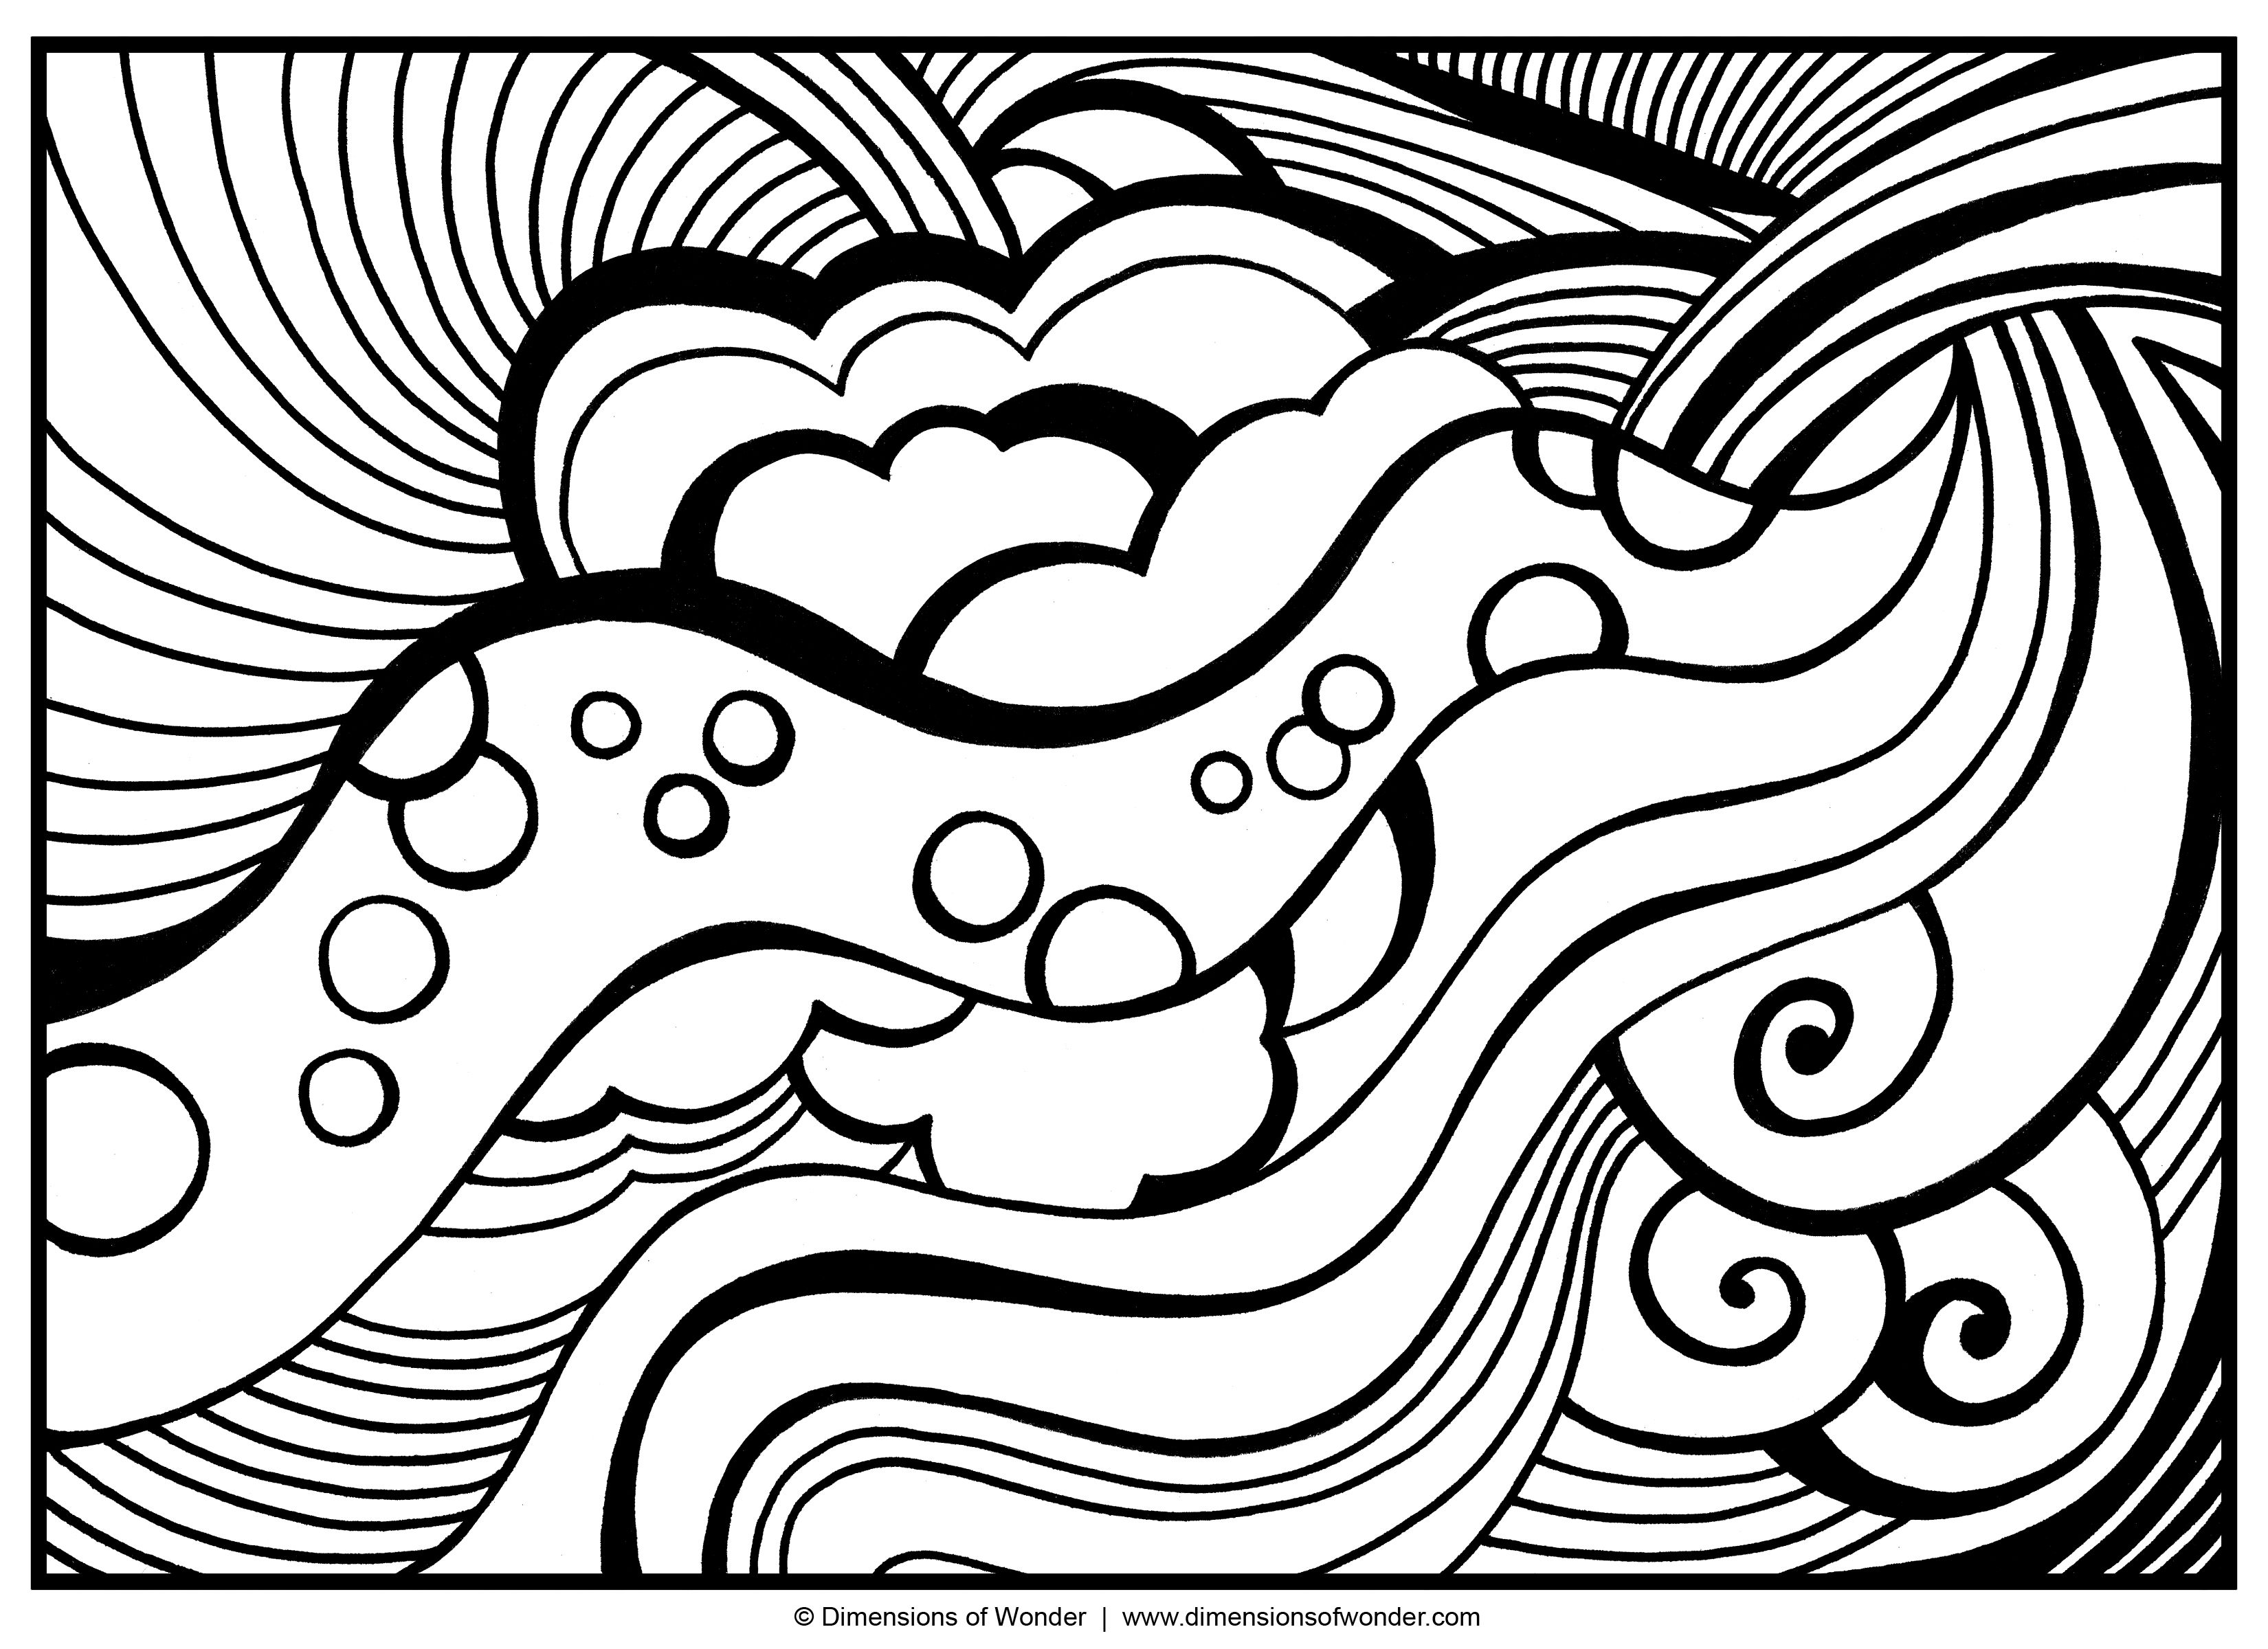 Free online coloring pages for adults - Abstract Coloring Pages Free Large Images